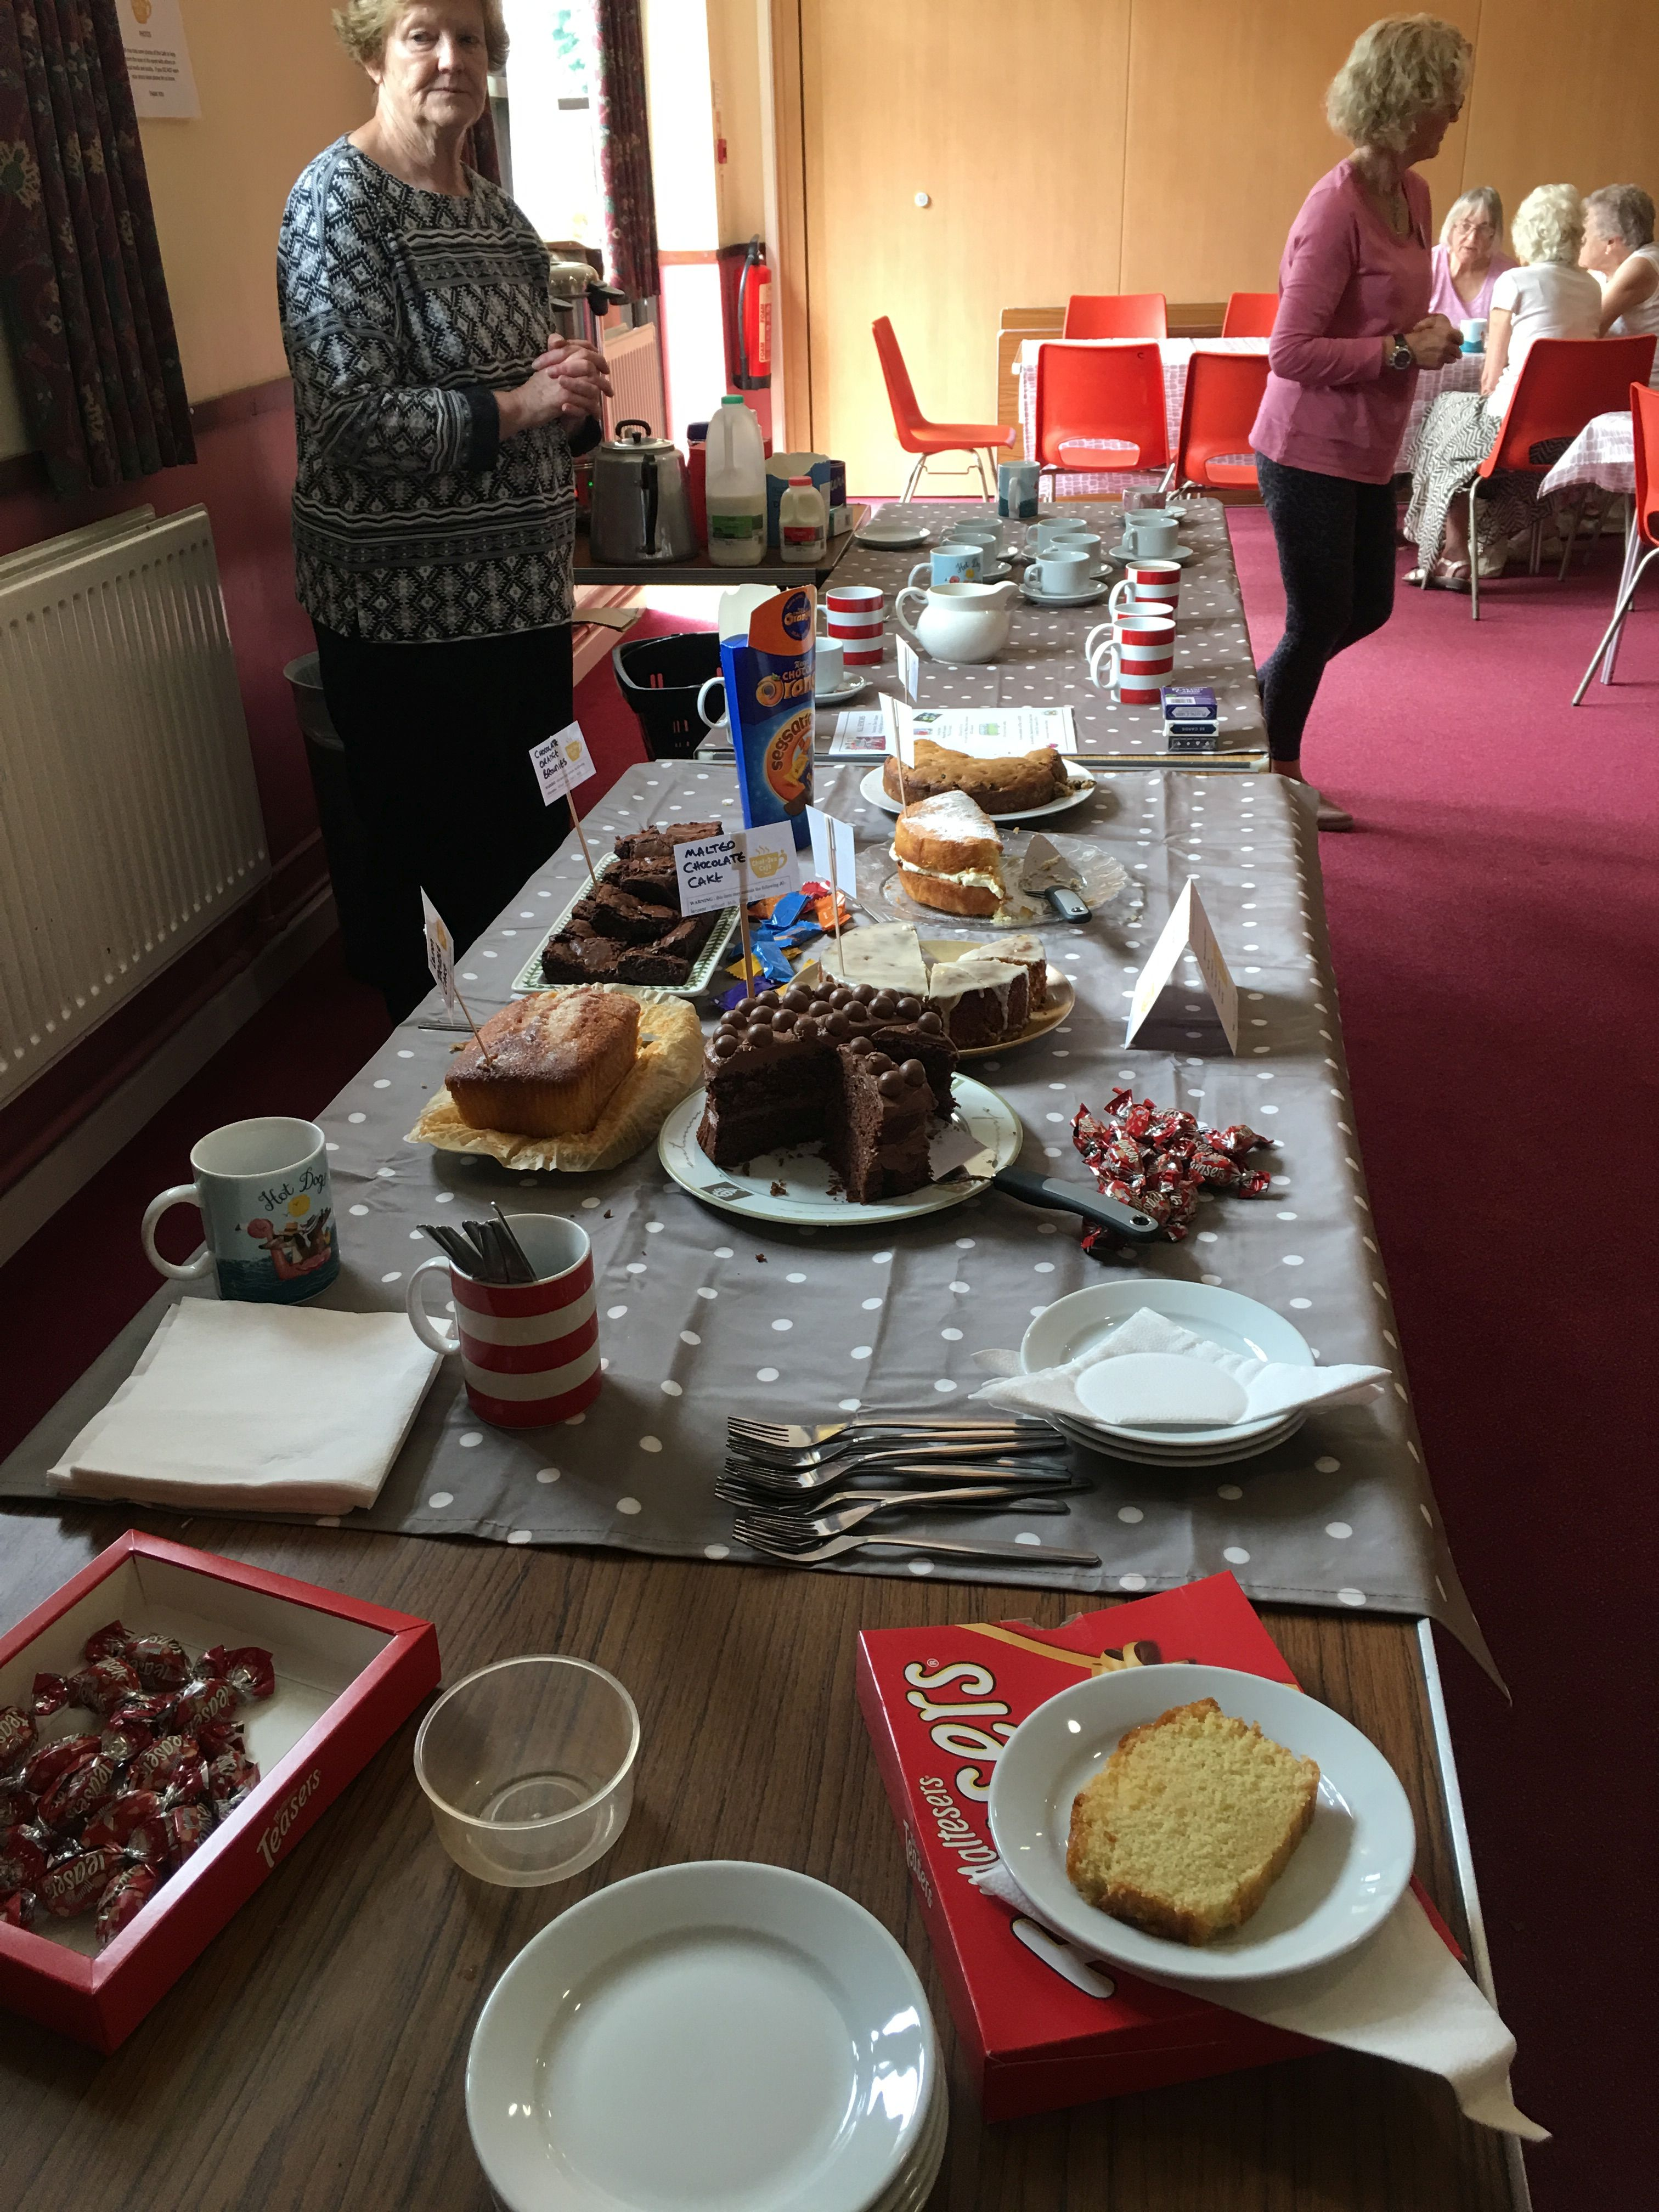 Cakes and Volunteers at the Chat-Tea Café